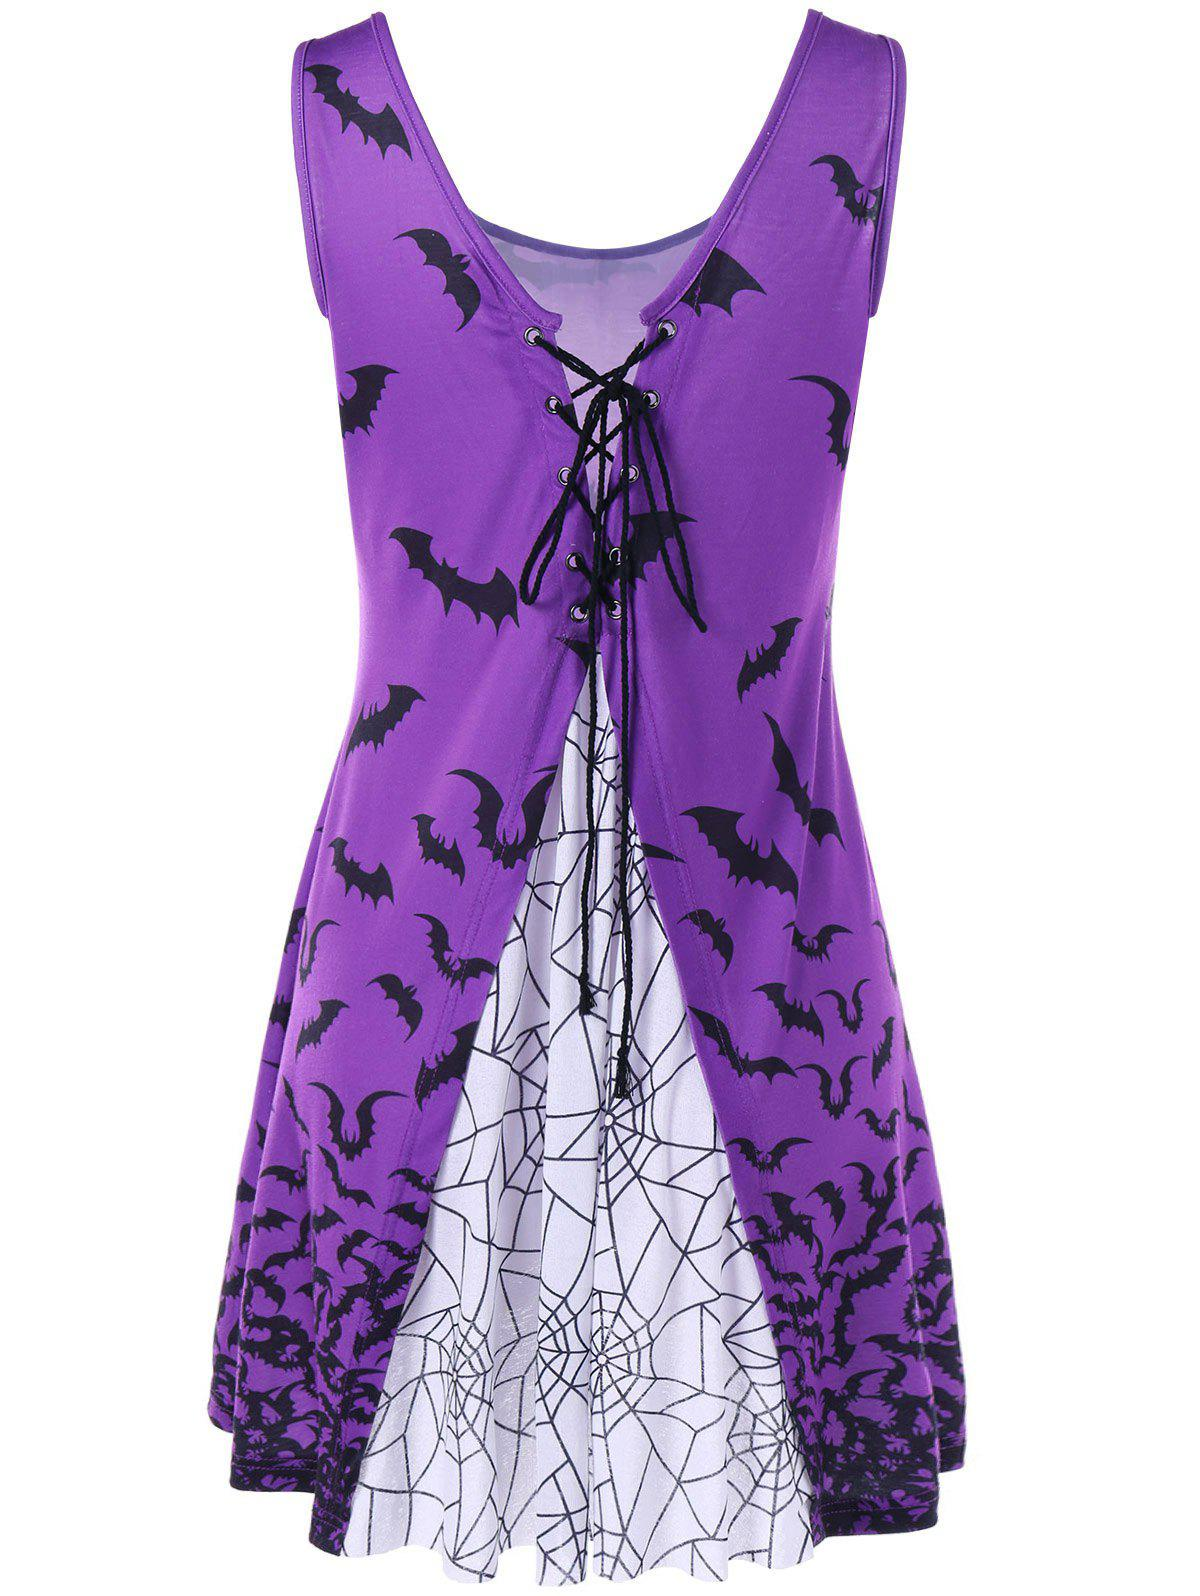 Lace Up Bat Print Tank Dress - Pourpre L